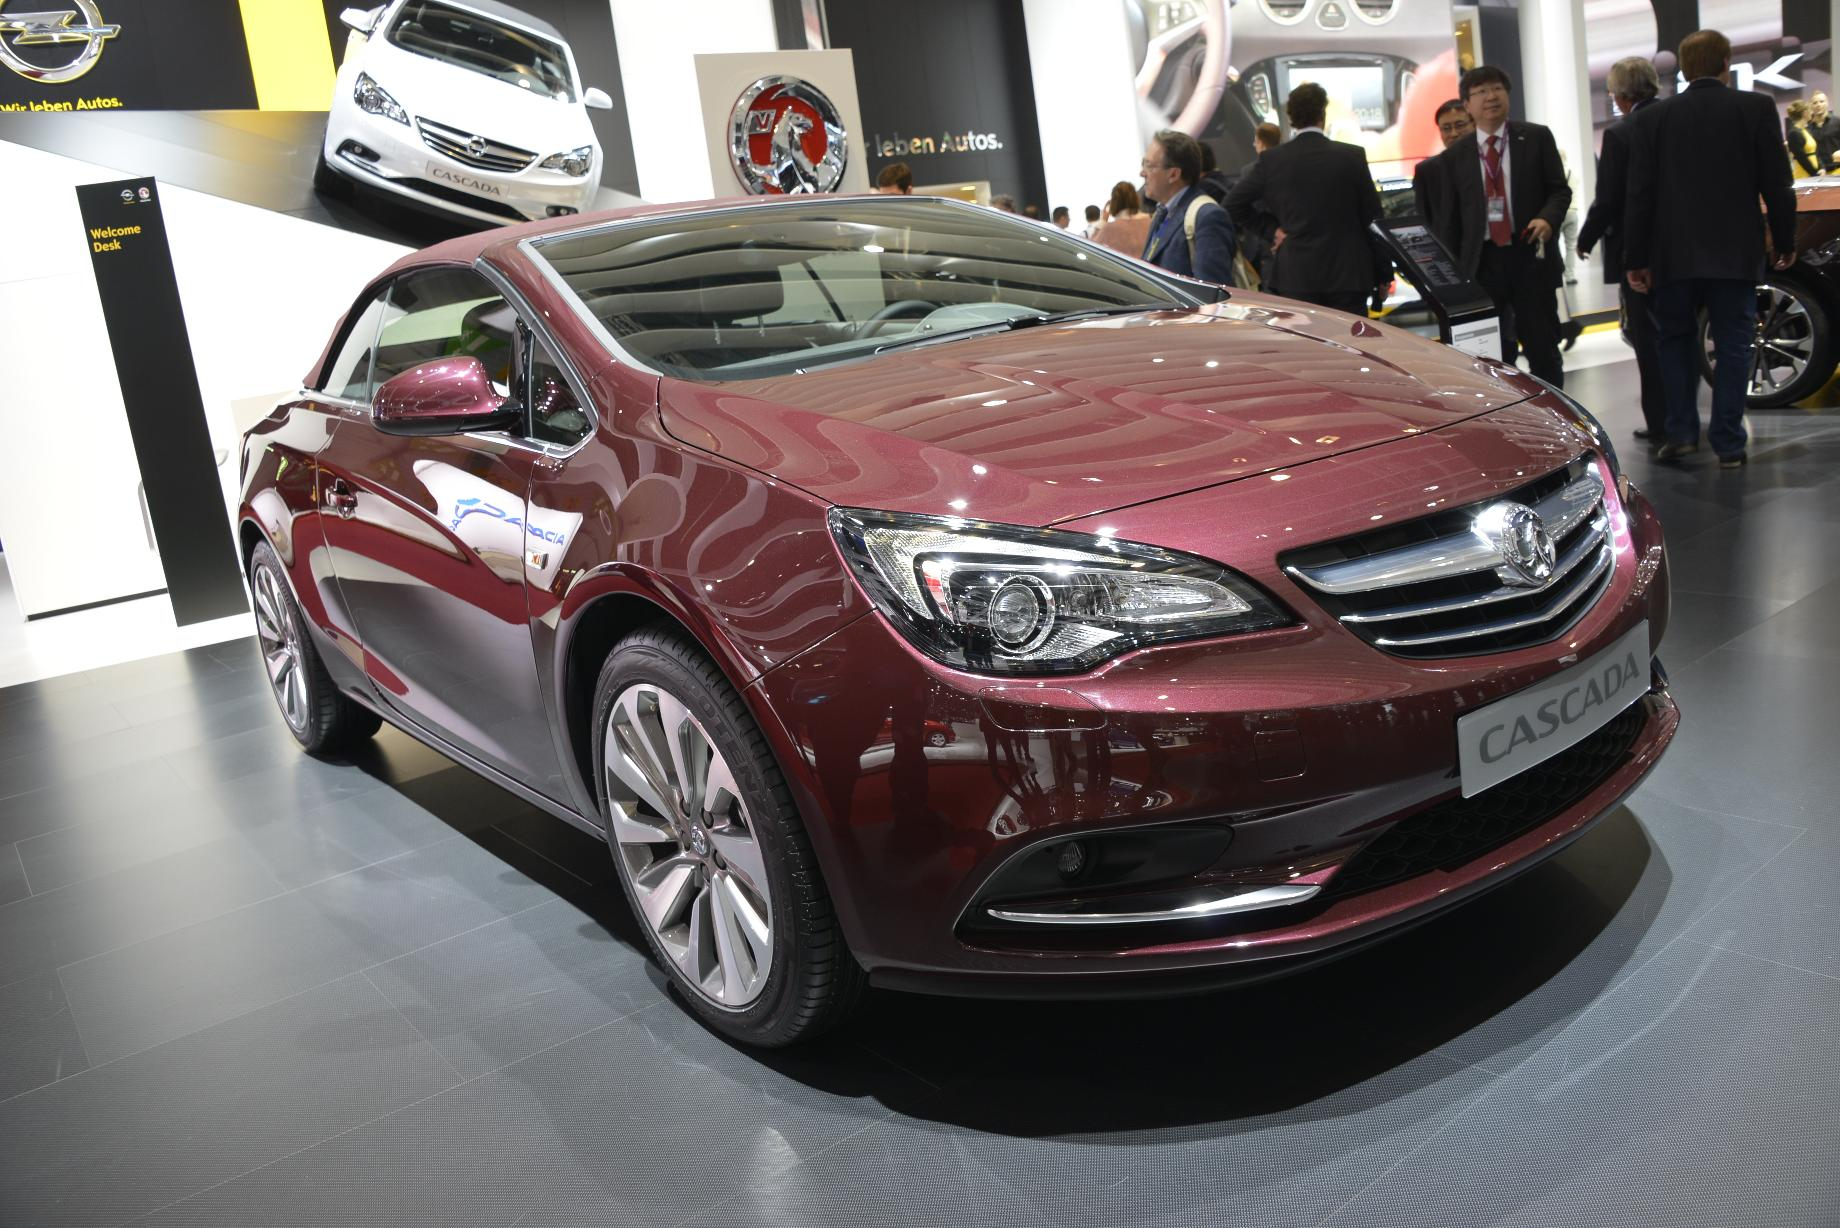 Opel cascada salon de gen ve 2013 for Motor para cascada